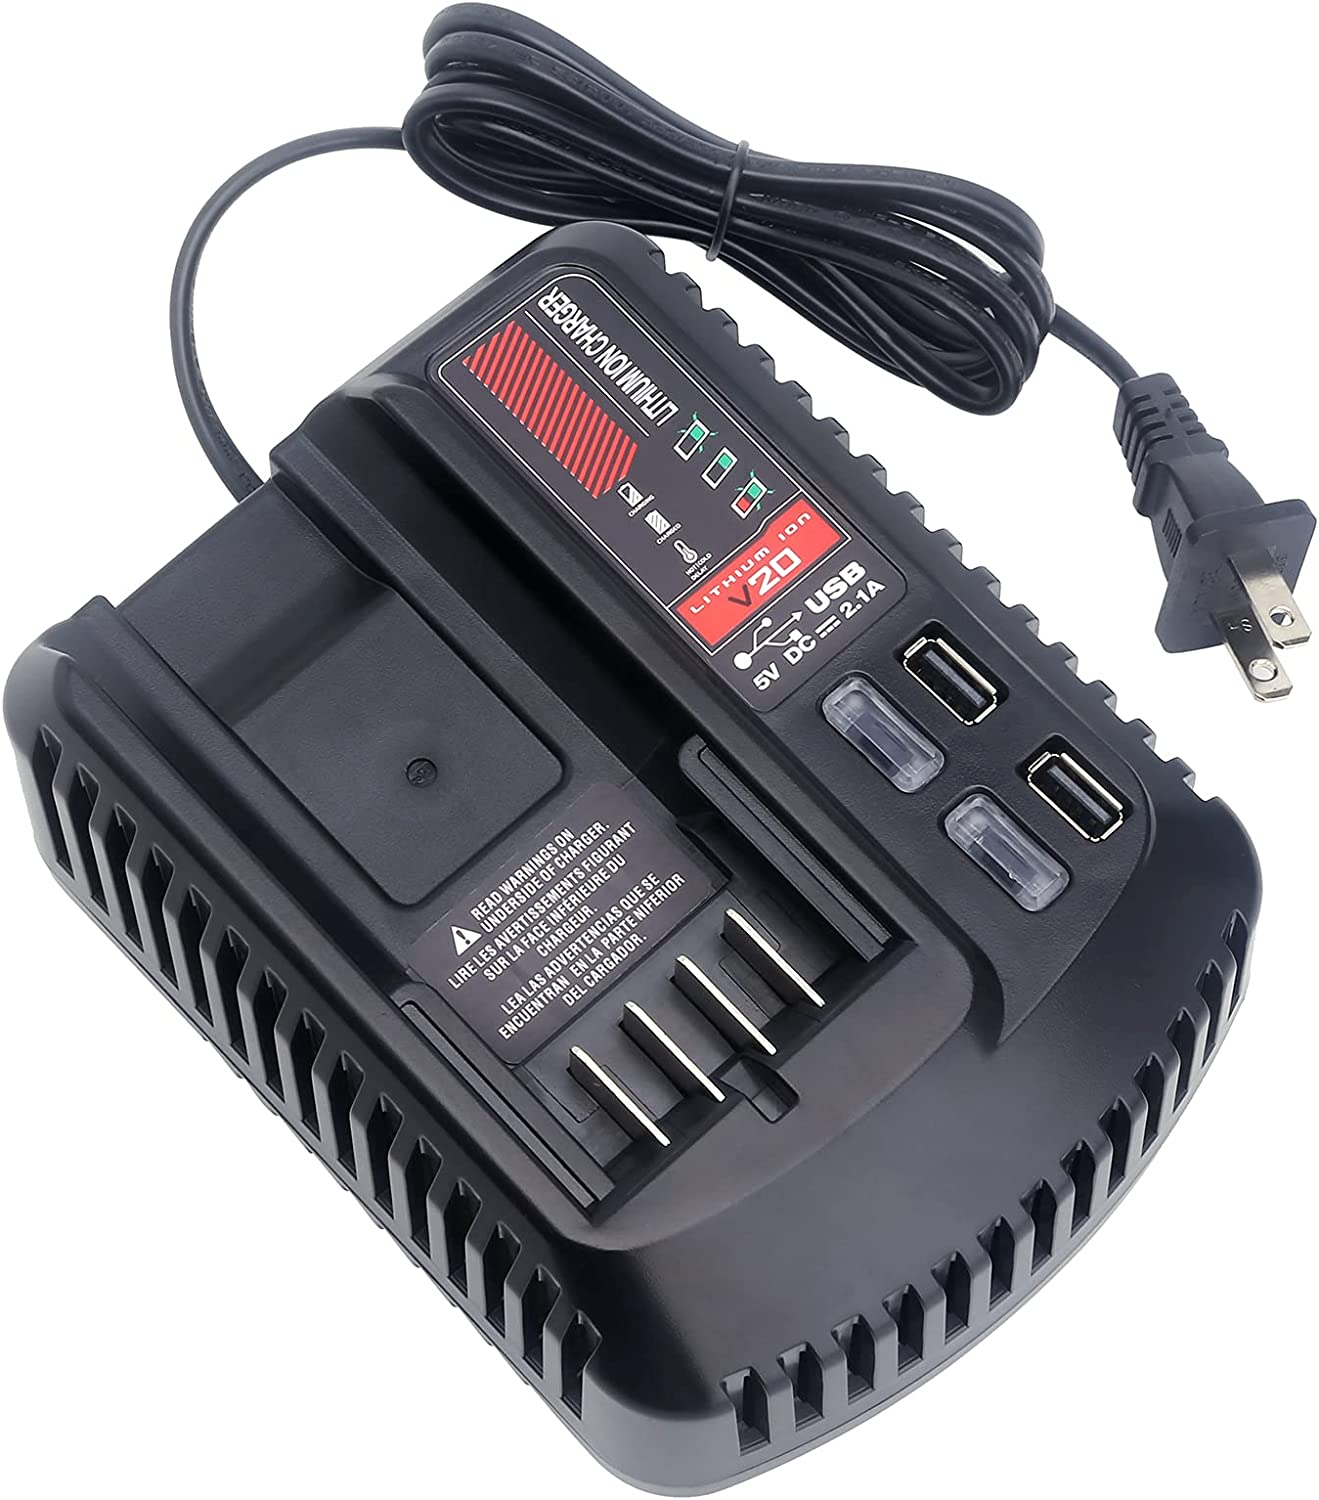 Yongcell CMCB104 Charger with USB Port Replacement for Craftsman V20 Battery Fast Charger CMCB100 CMCB124 Compatible with Craftsman 20V Lithium Battery CMCB202 CMCB204 CMCB201 (Only for V20 Battery)